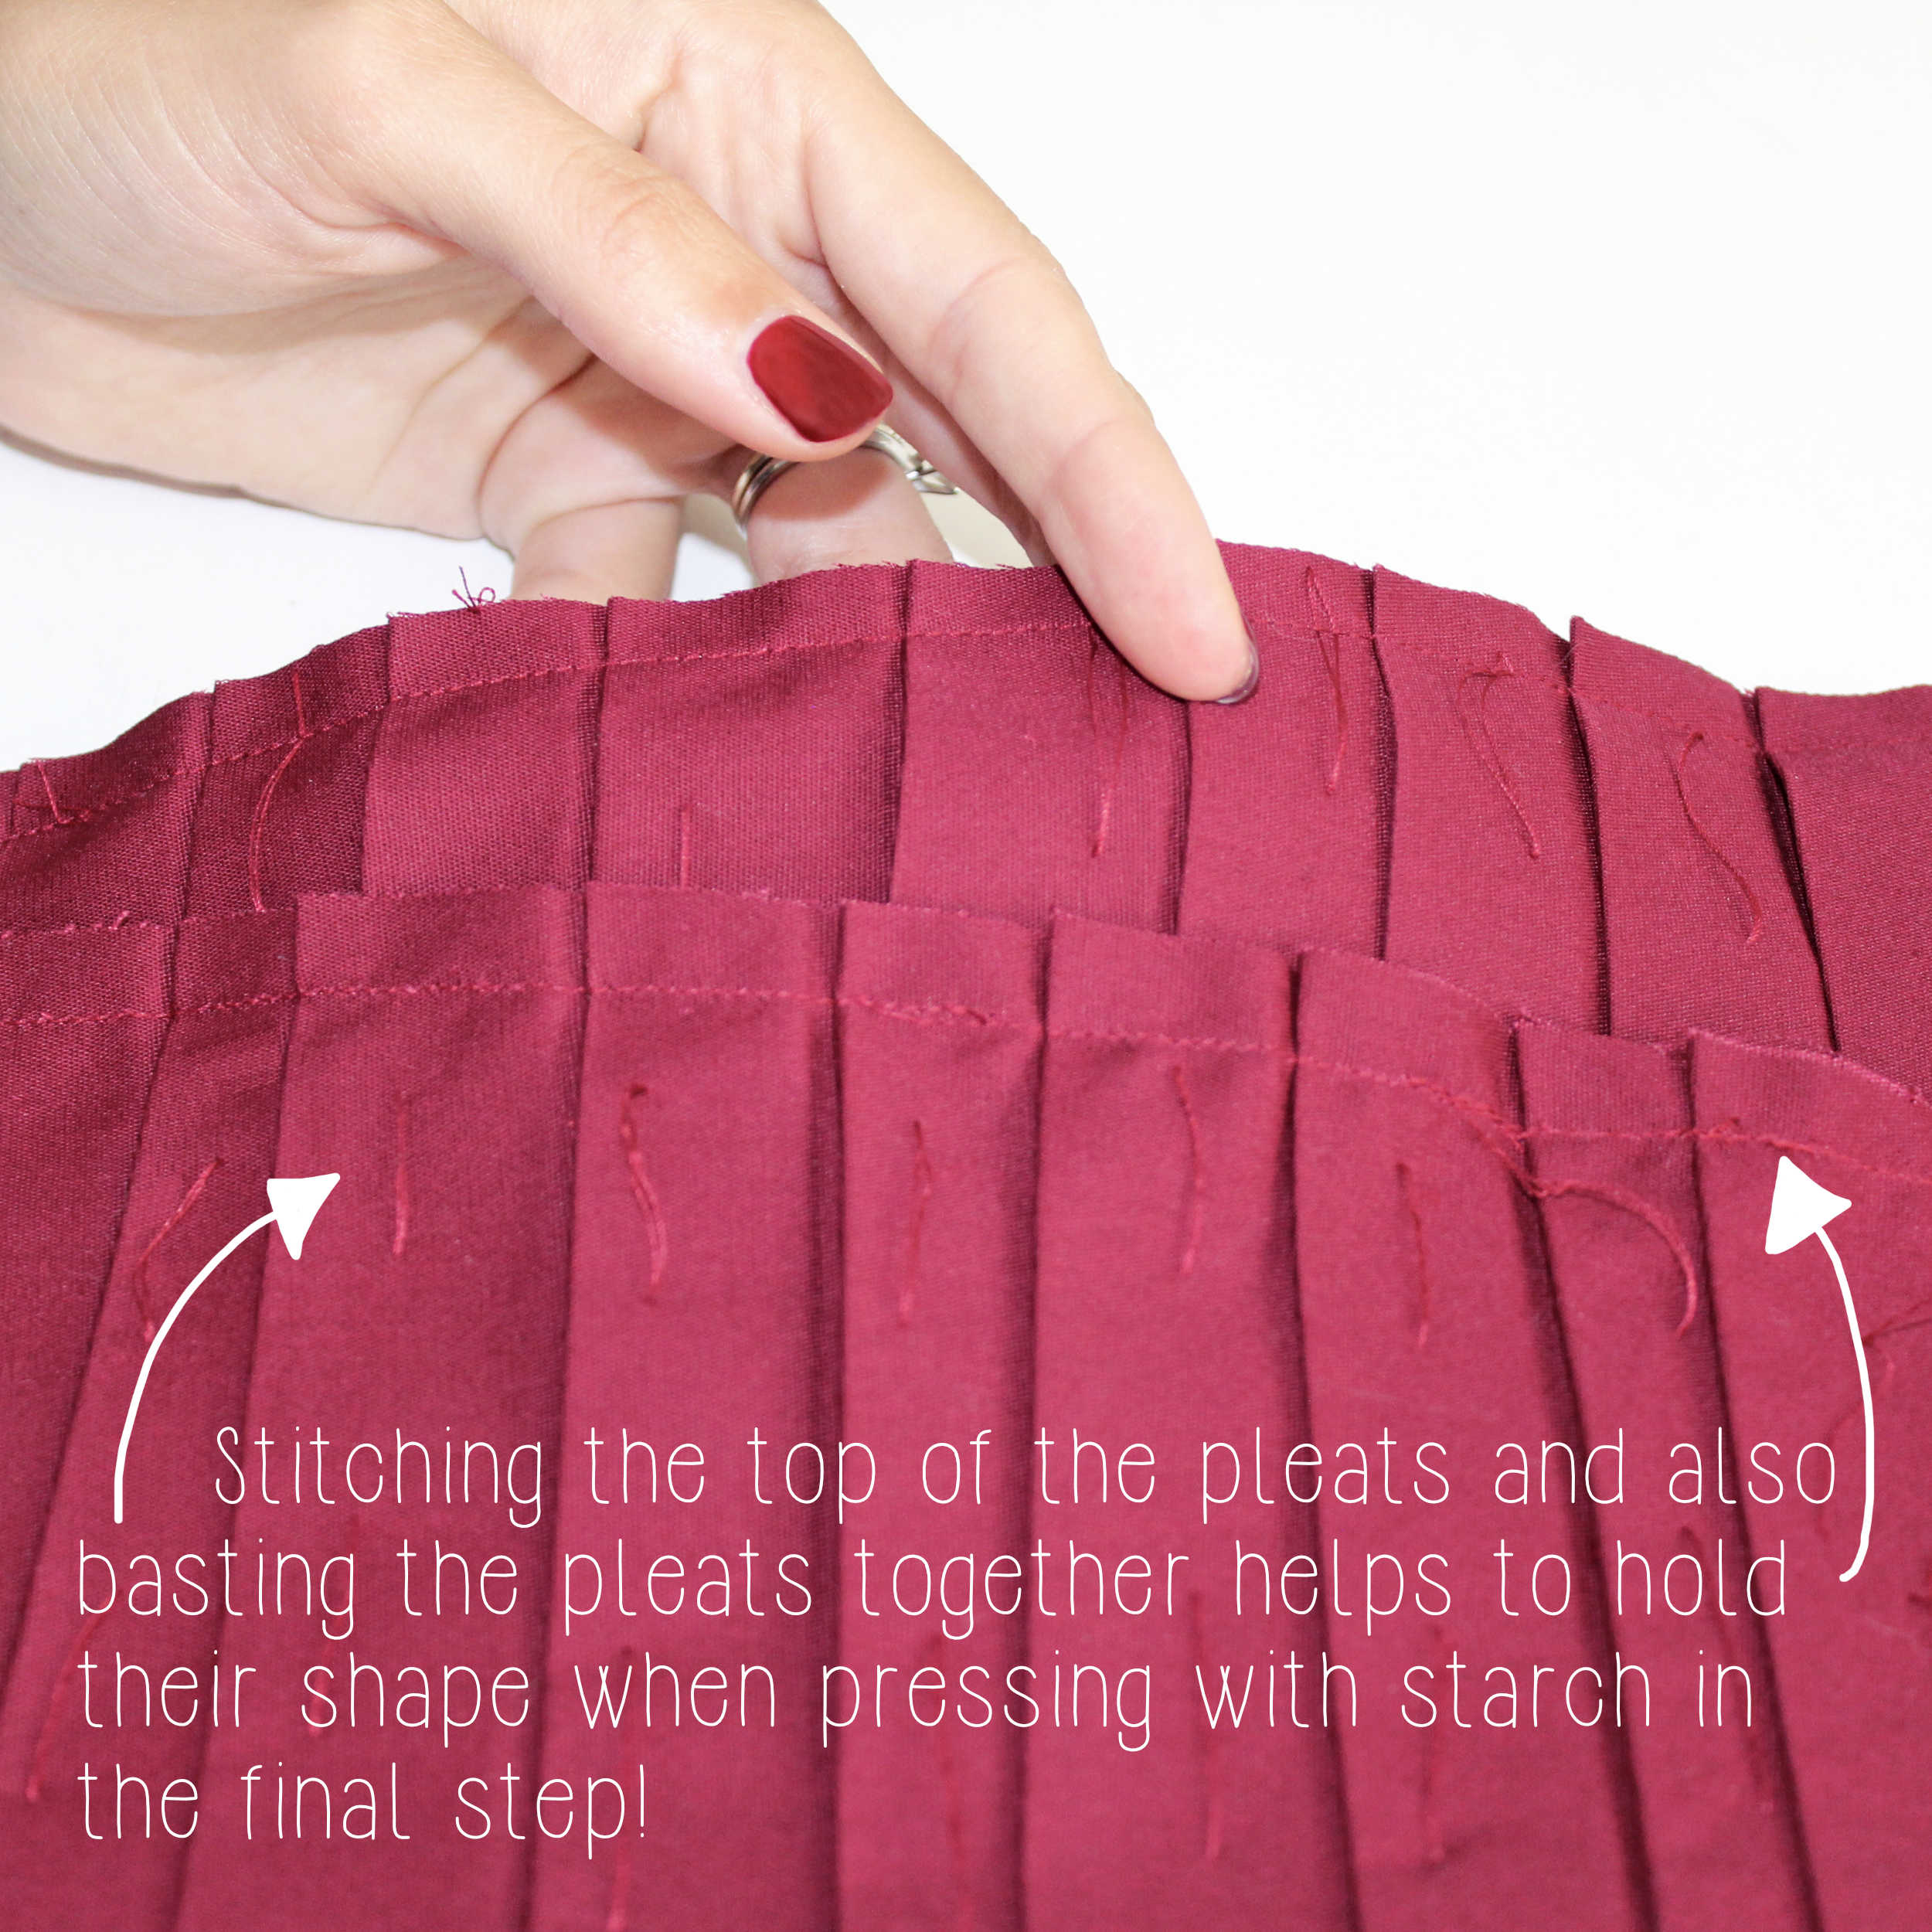 Sewing Tutorial: How To Sew Knife Pleats, Step 4.1